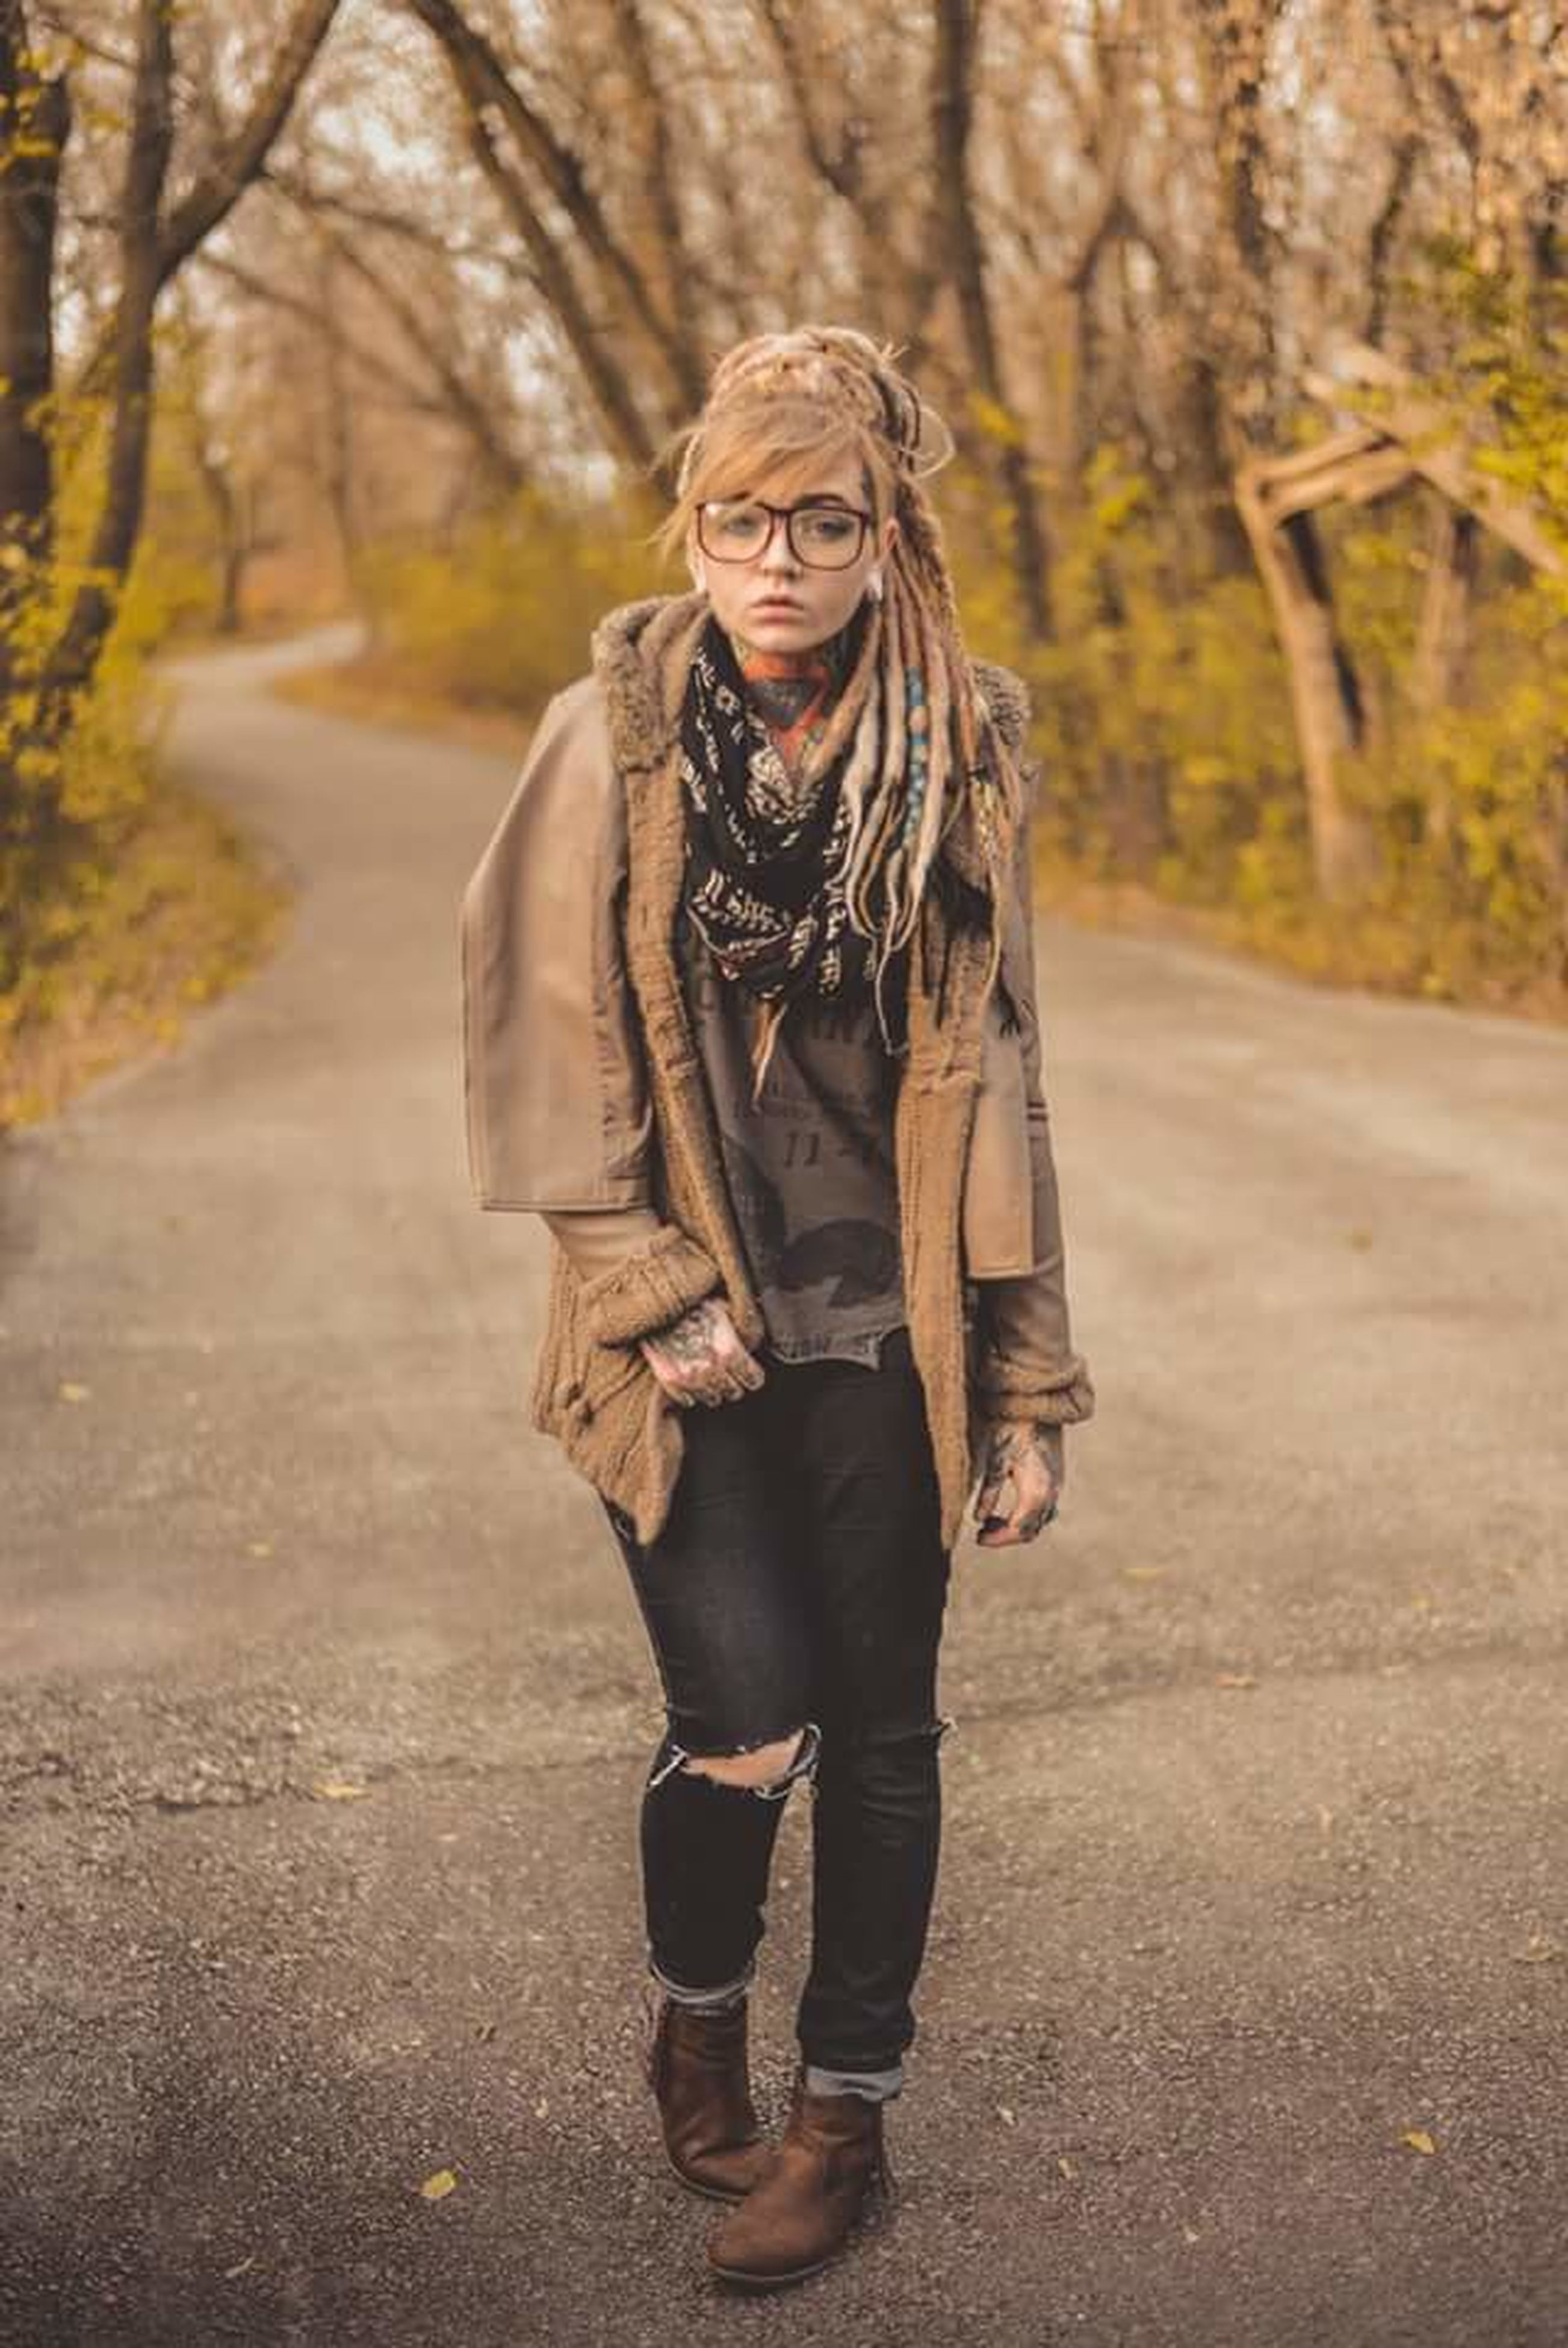 young adult, human body part, portrait, beautiful people, autumn, blond hair, beauty, women, fashion, adult, sunlight, one person, nature, beautiful woman, smiling, people, only women, arts culture and entertainment, young women, outdoors, scarf, adults only, one young woman only, human hand, day